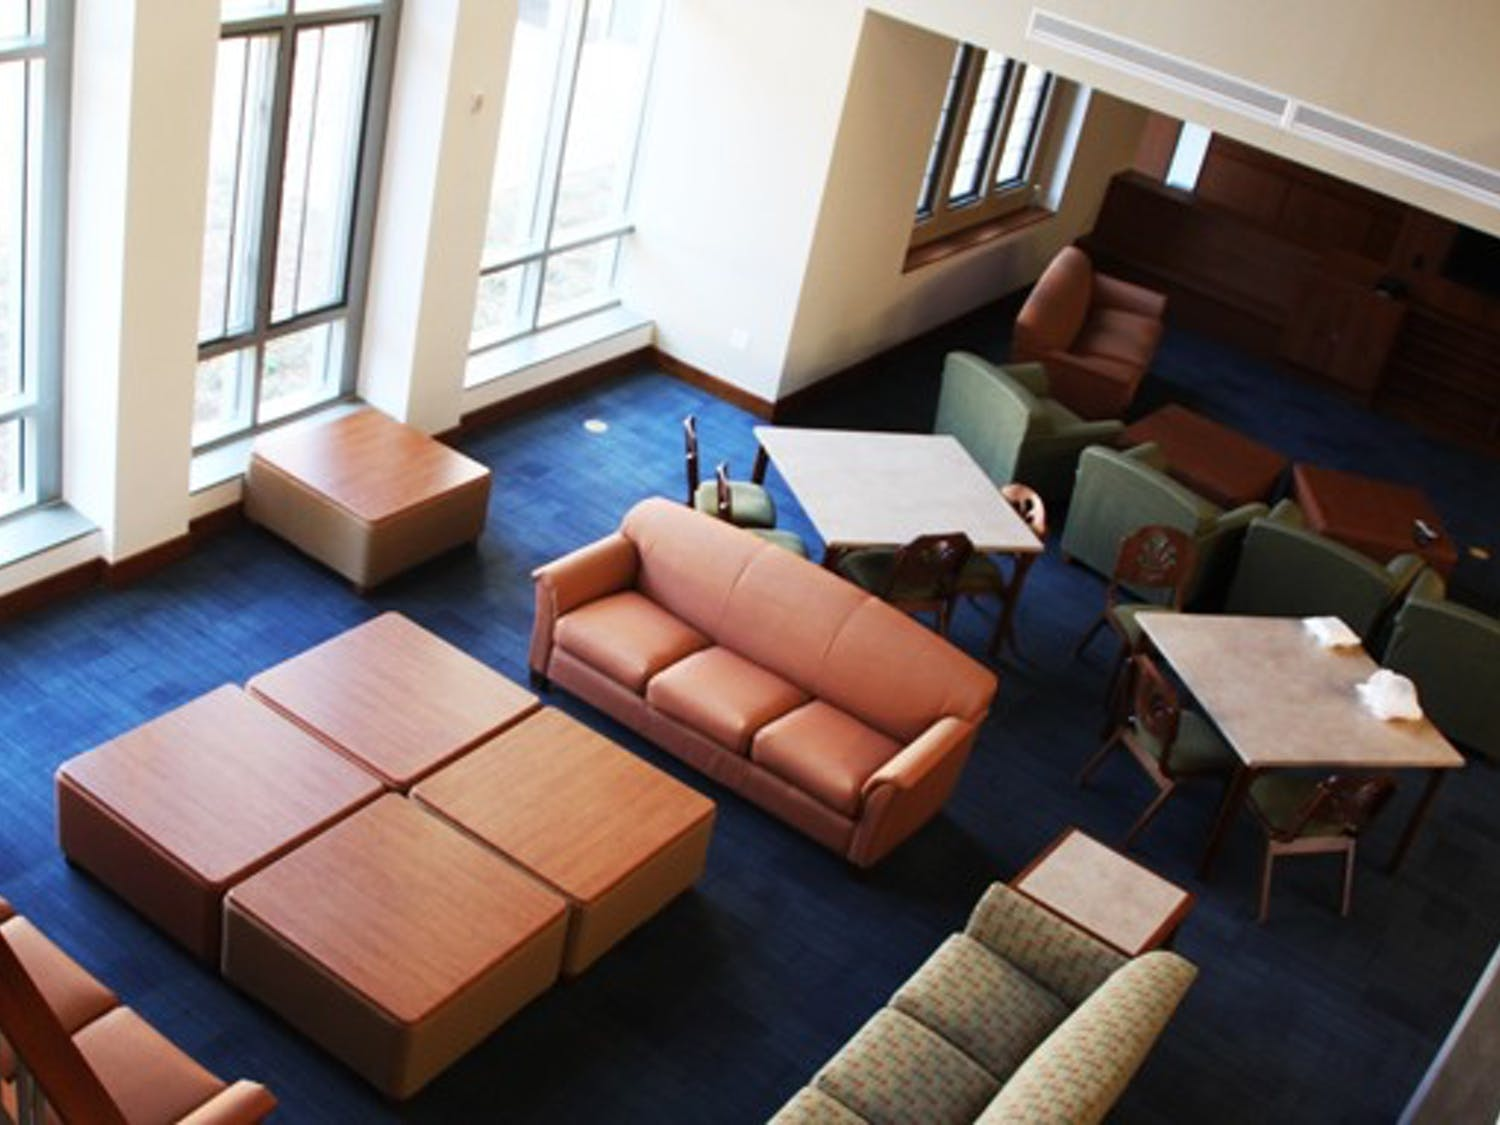 Keohane 4E Quadrangle opened for students in the Spring semester, adding 150 beds to West Campus.